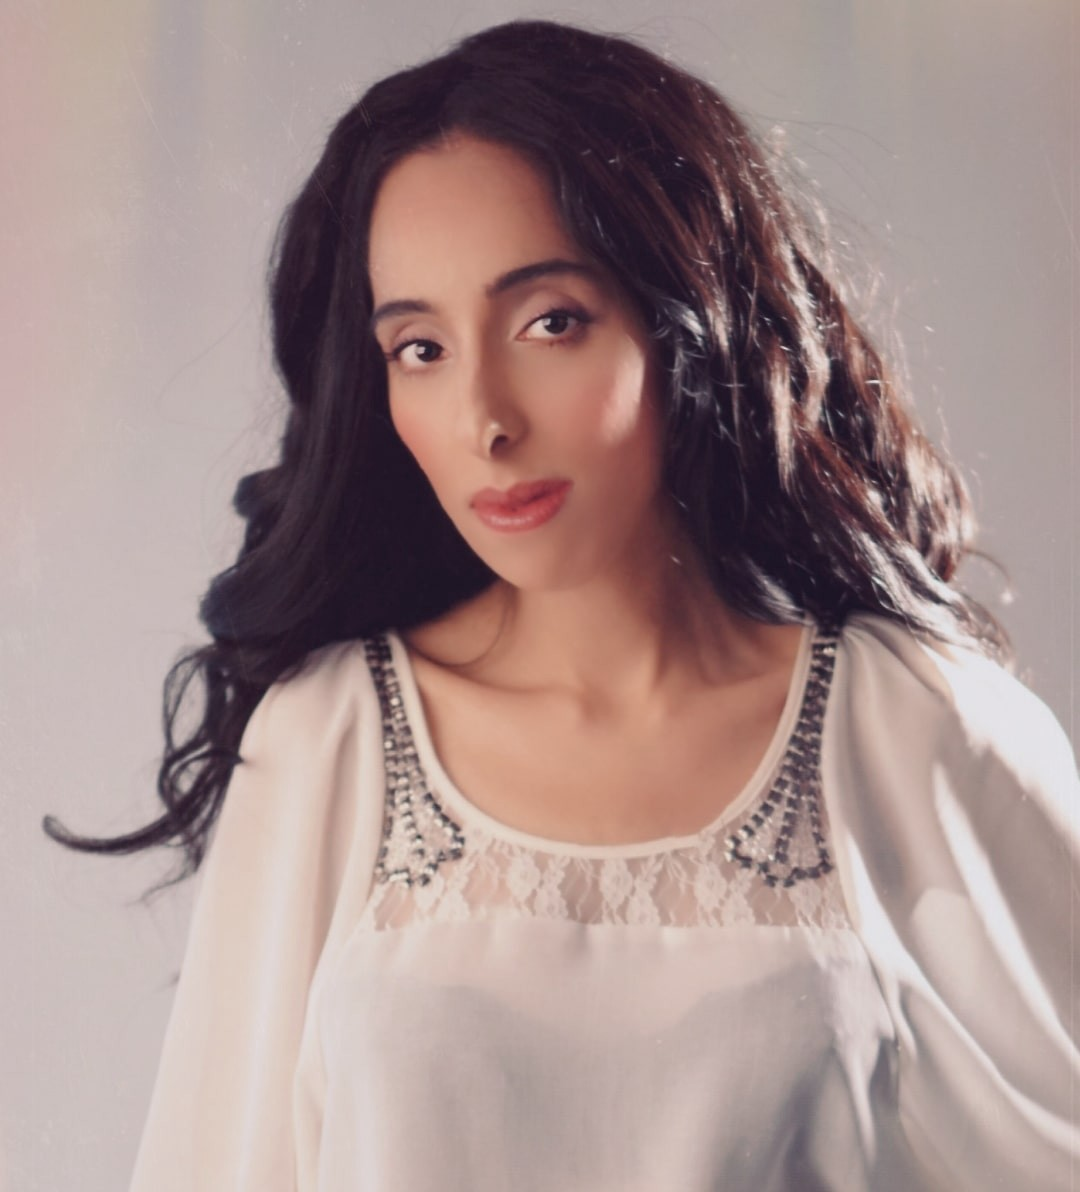 Arzutraa becomes the first Indian Singer to launch the purest organic skincare brand in the world 'Arzutraa Beauty UK'